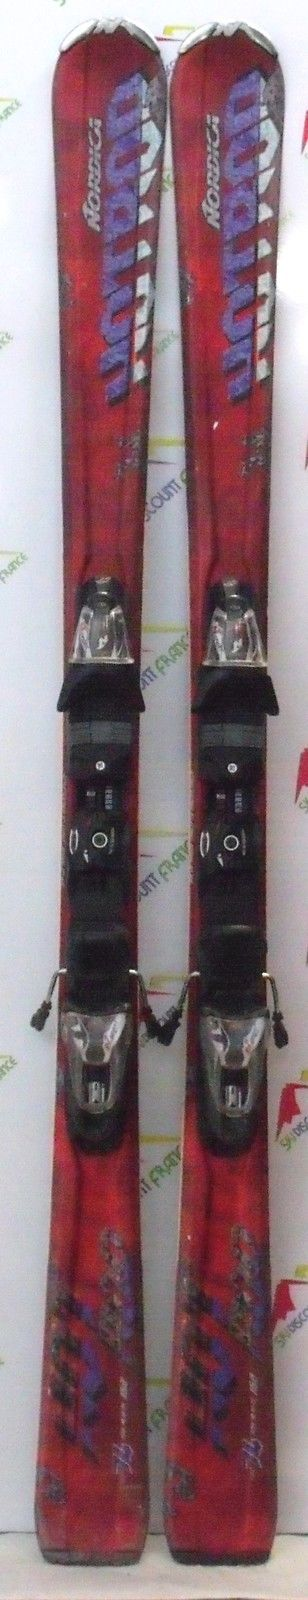 Ski Occasion Nordica Hot Rod Parabolique